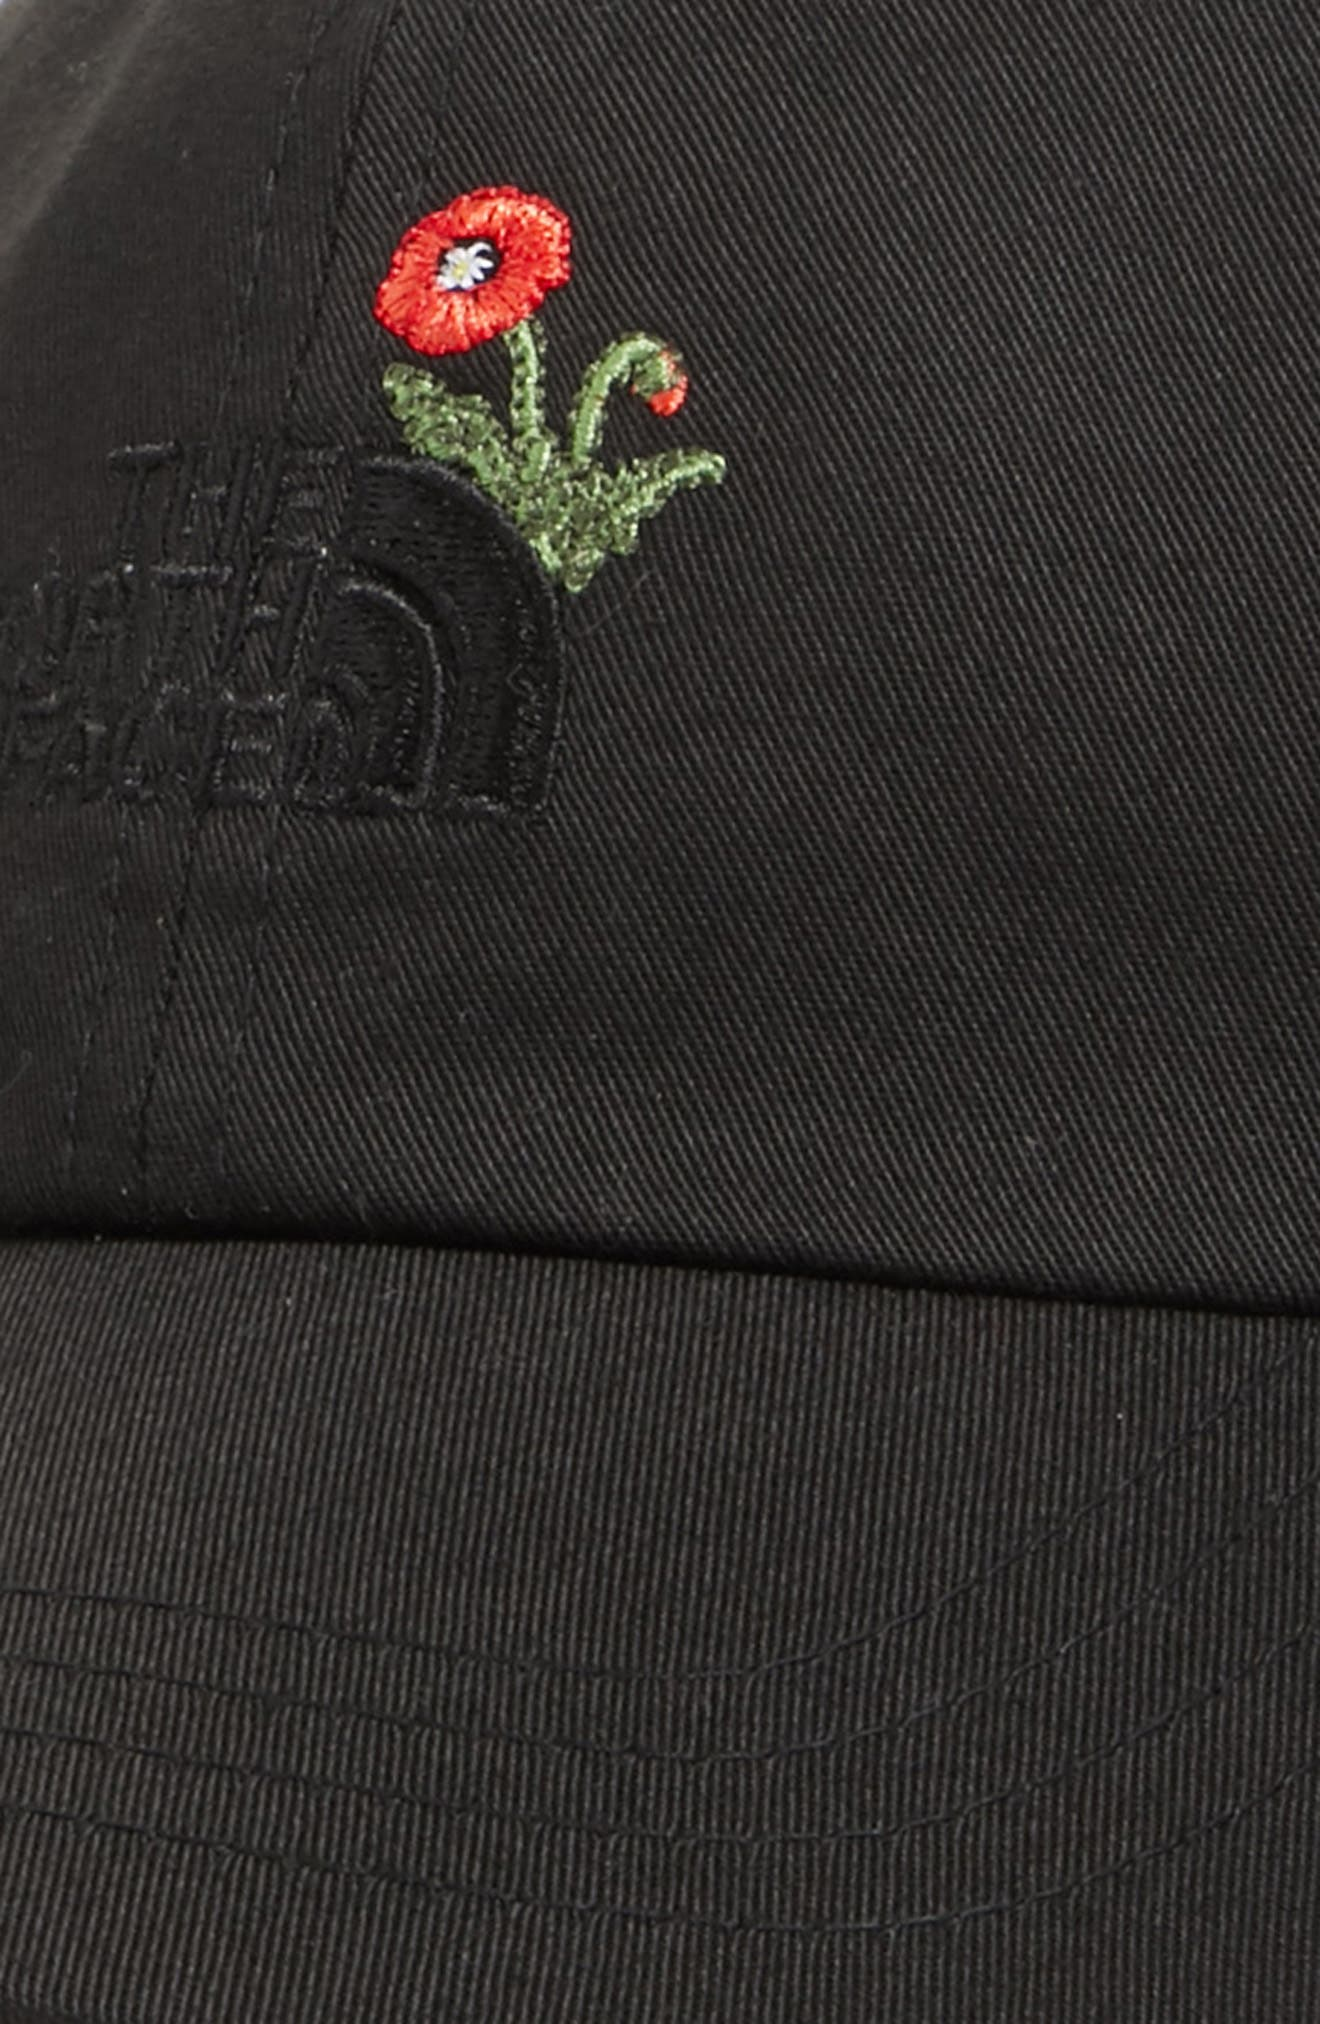 Norm Poppy Embroidered Adjustable Cap,                             Alternate thumbnail 4, color,                             Tnf Black